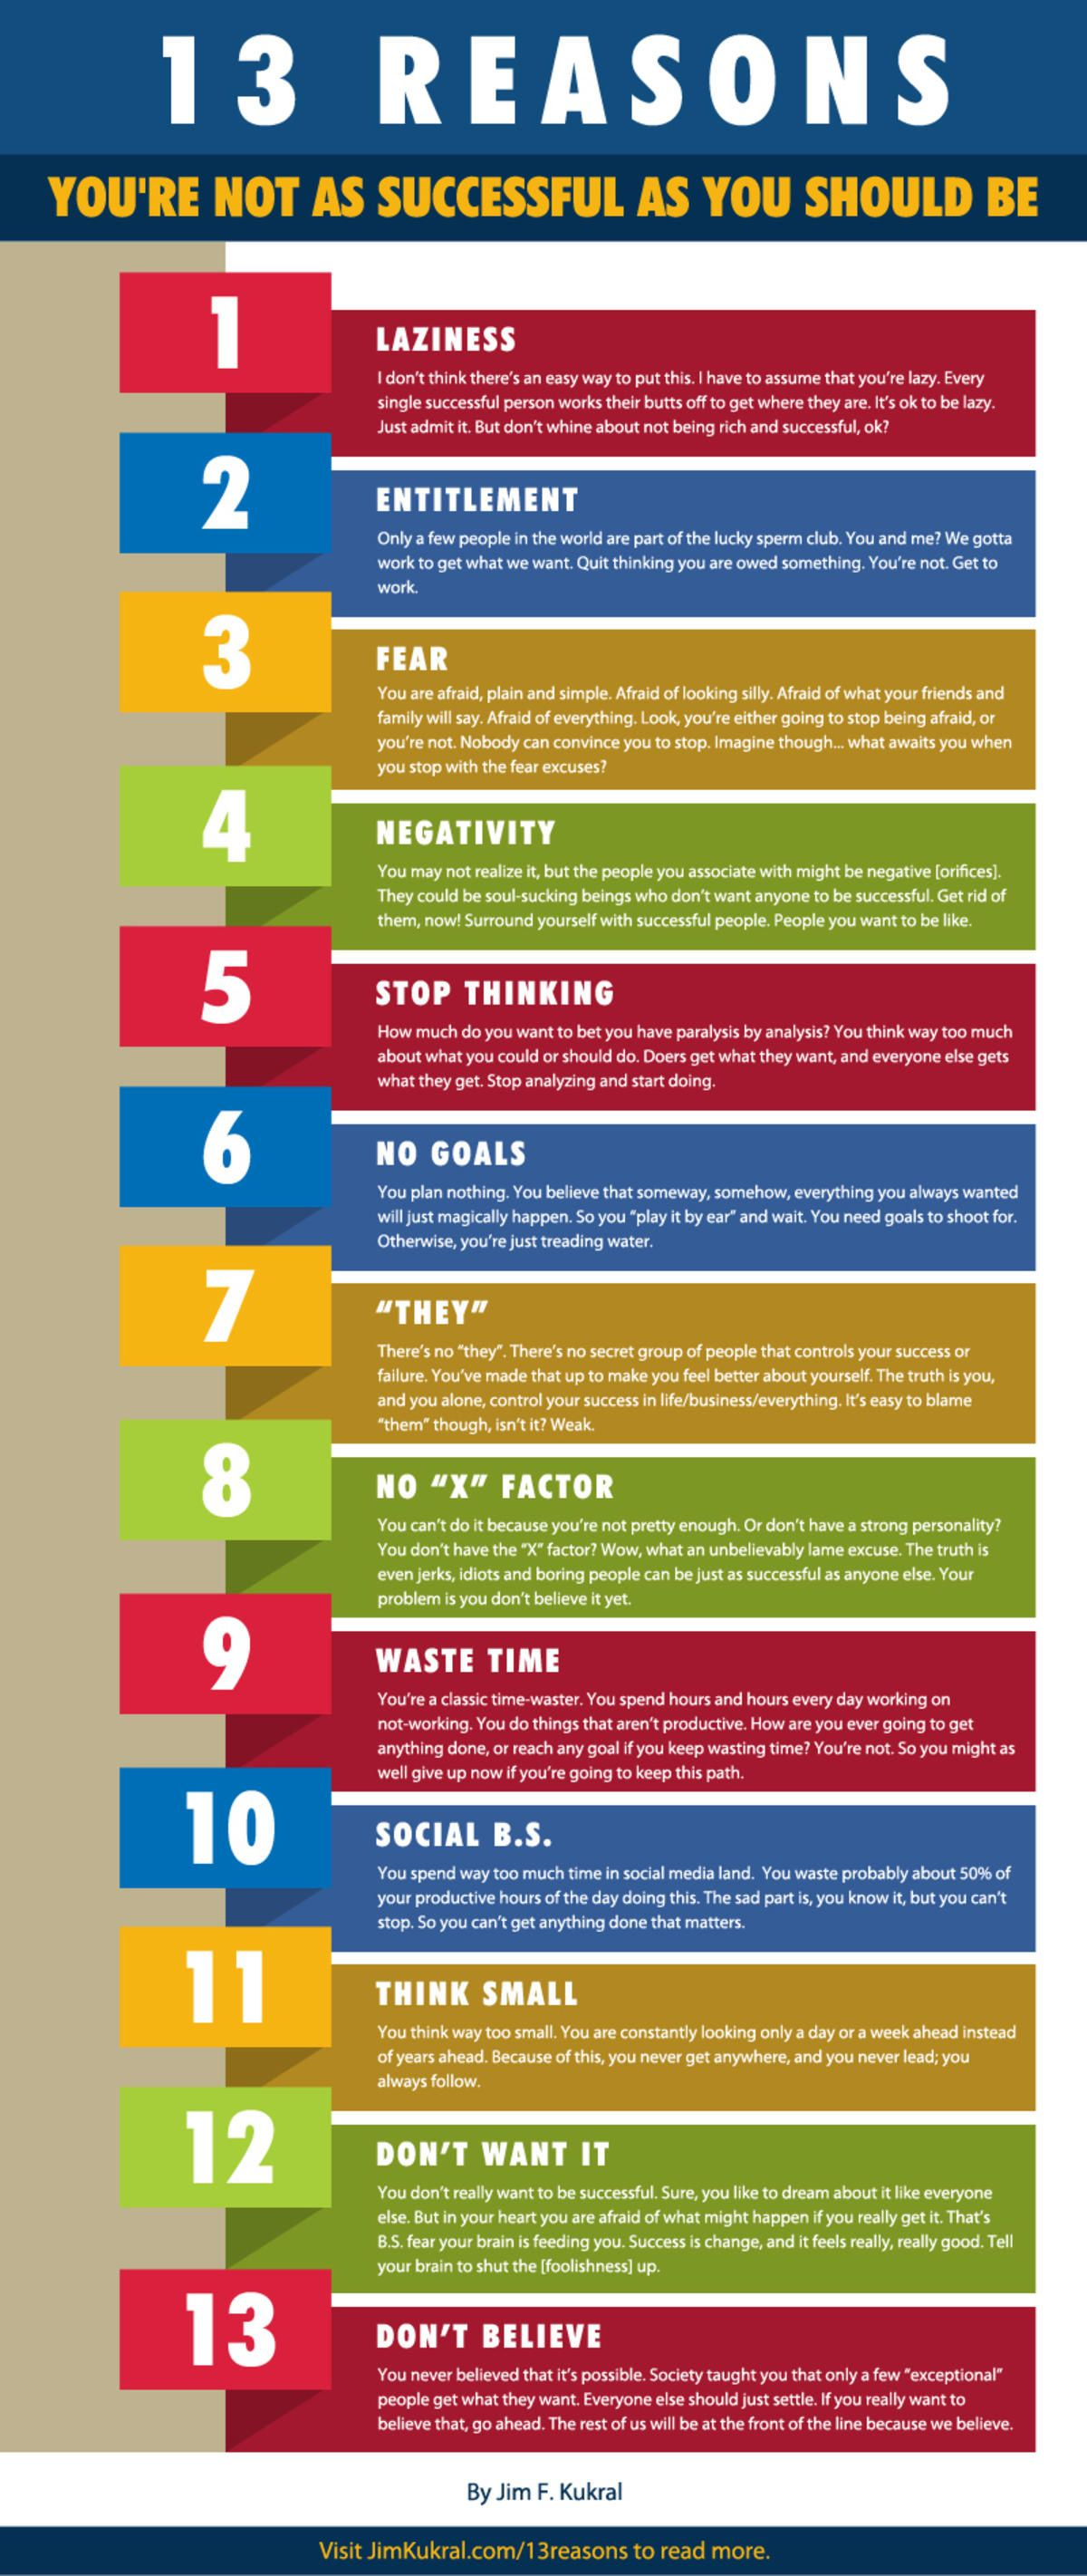 Of course being #successful doesn't mean having everything to everyone. Some people see success as something entirely different, and that's ok. This infographic is related to success in money and other related subjects. @ultralinx | 13 Reasons Why You're Not Successful | #Infographic via - theultralinx.com